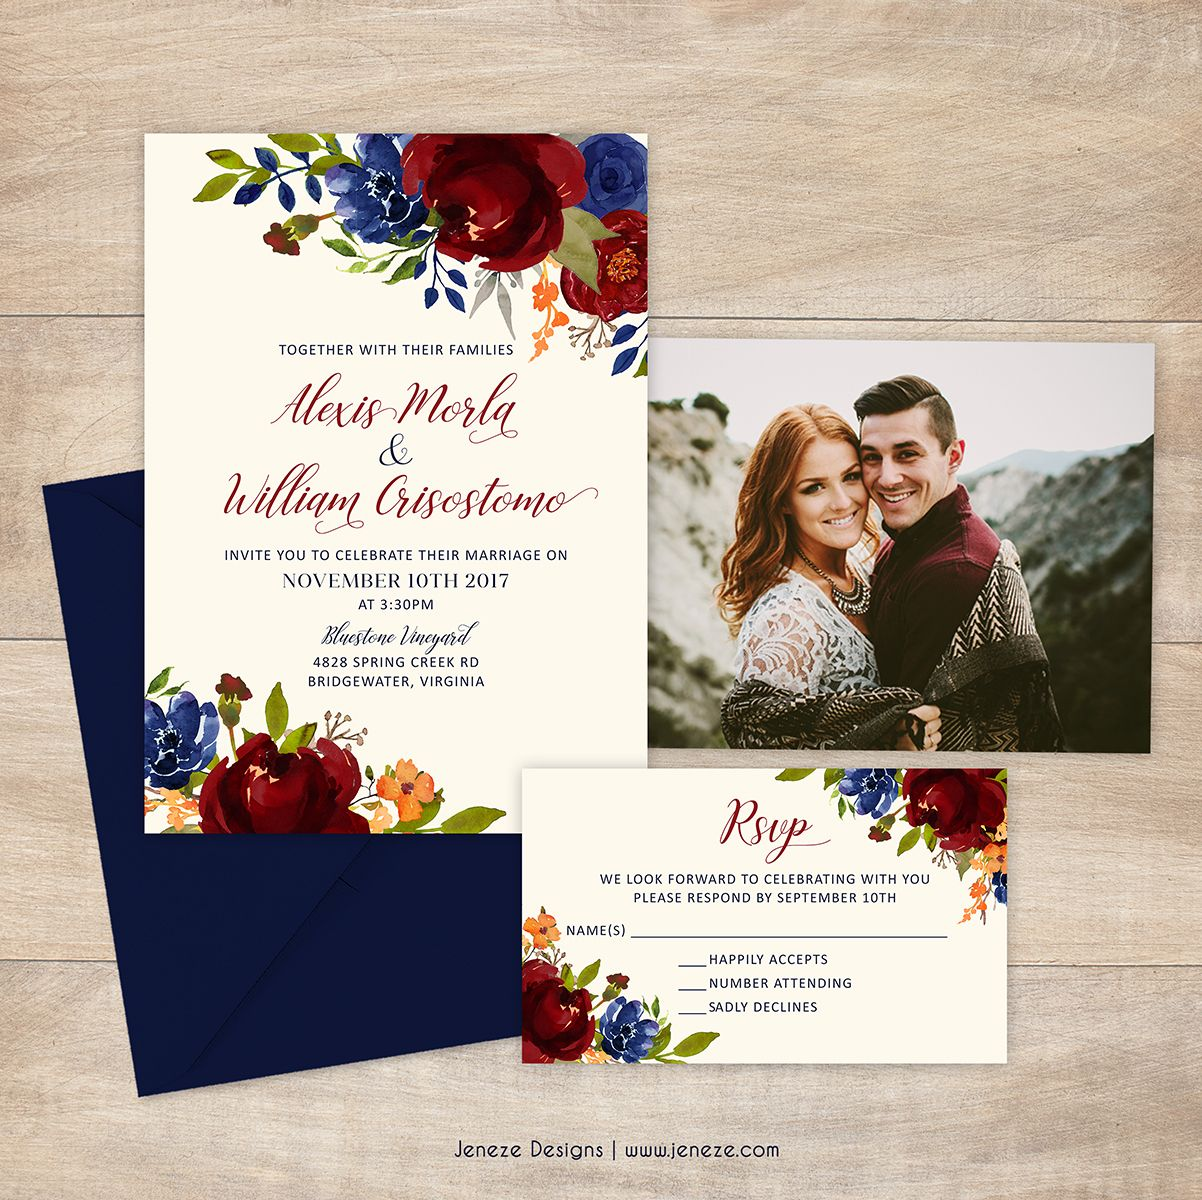 Wedding invitations with navy and red flowers. Warm summer or fall ...